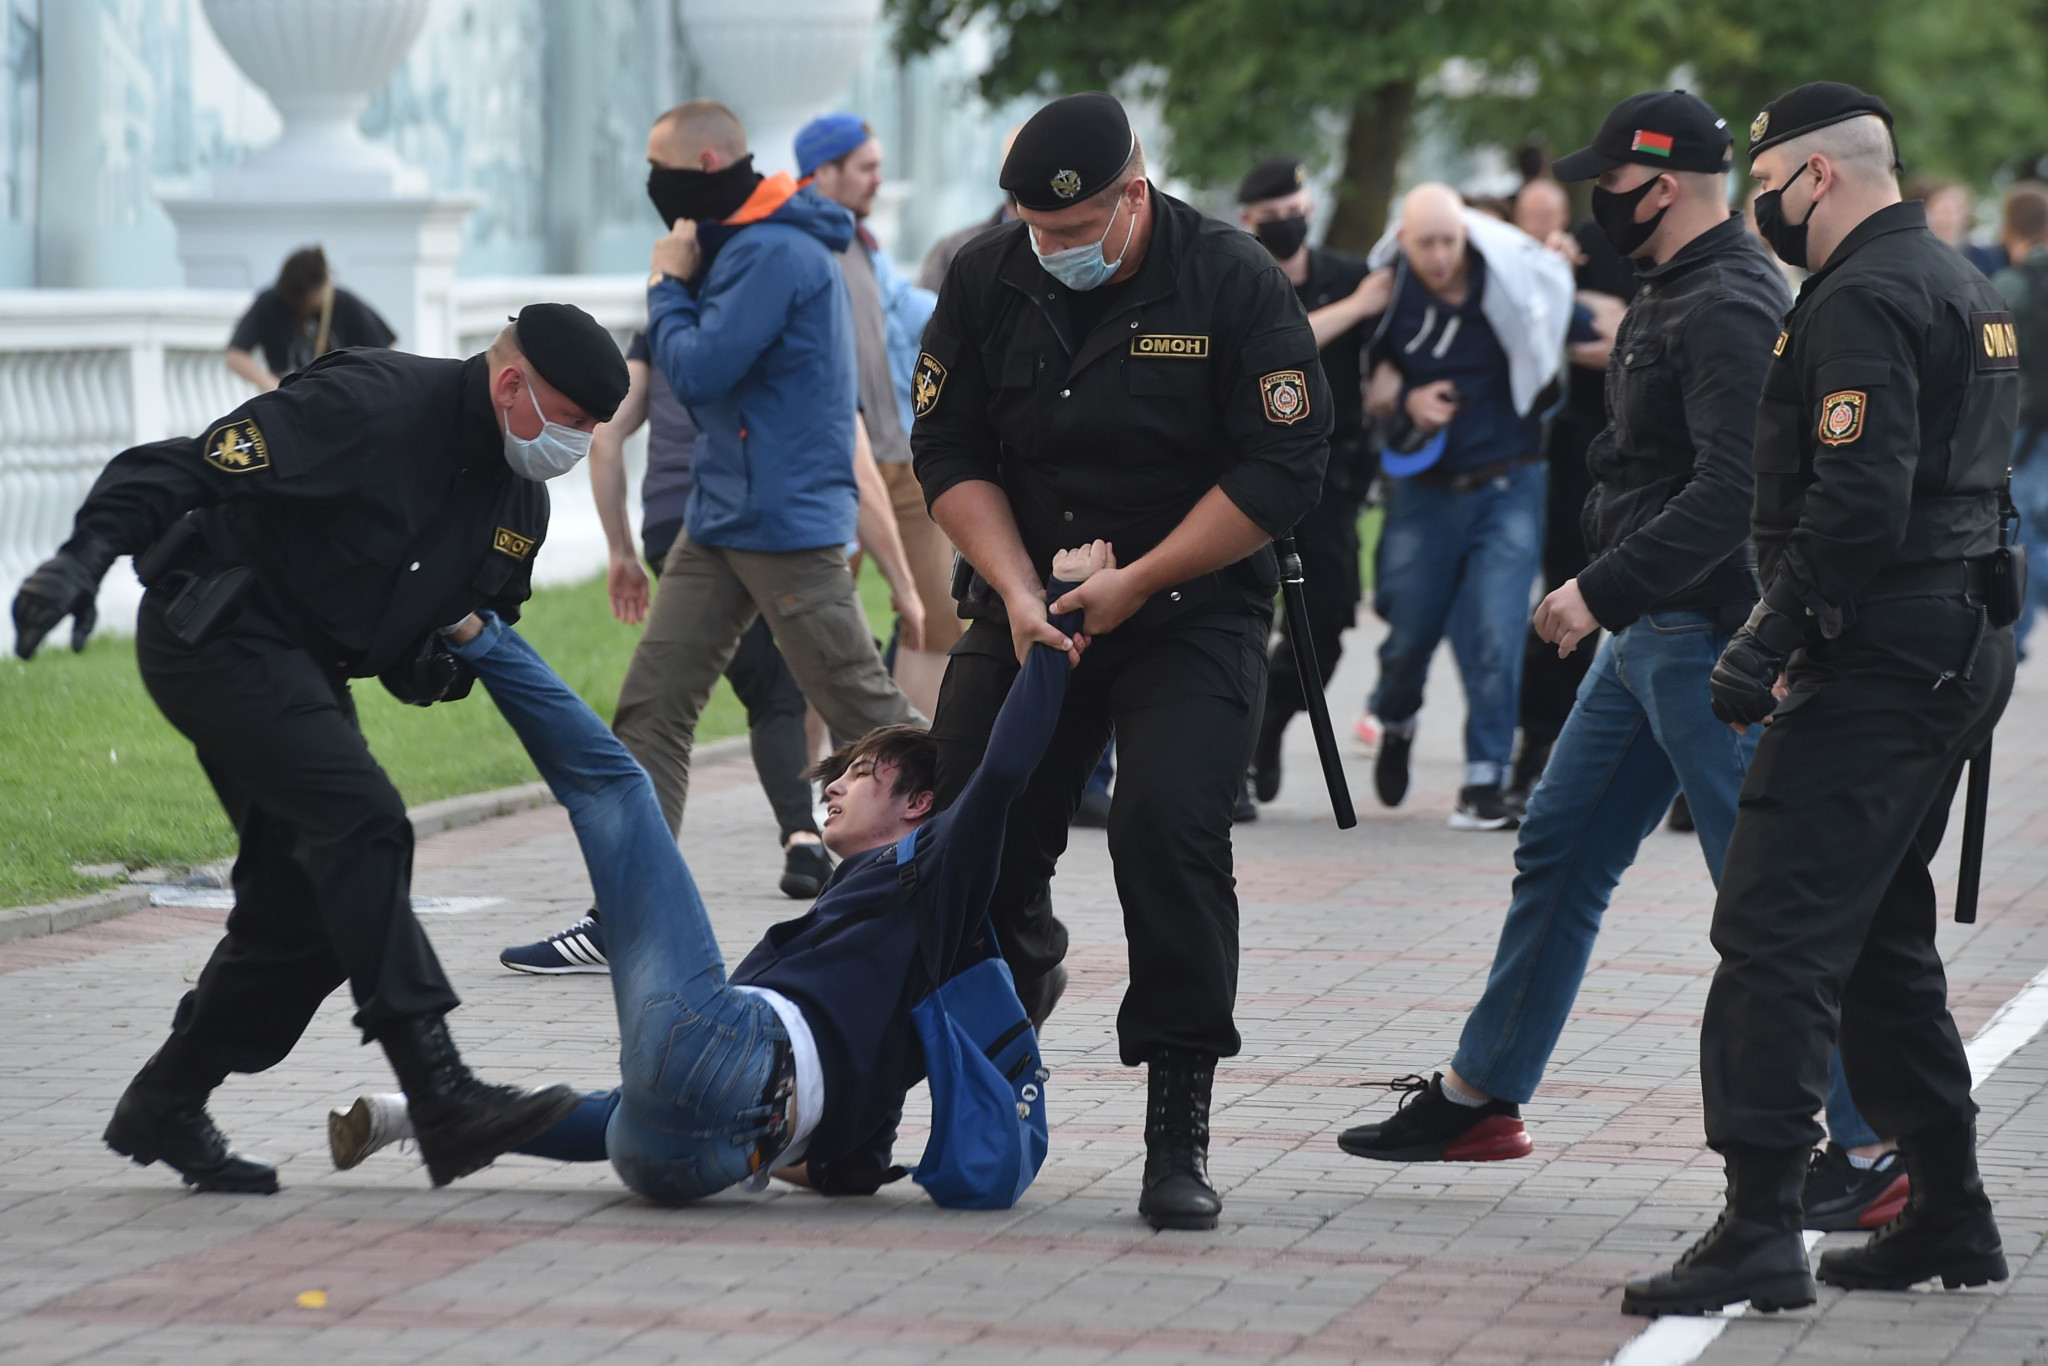 The election result in Belarus has been followed by violent protests ©Getty Images